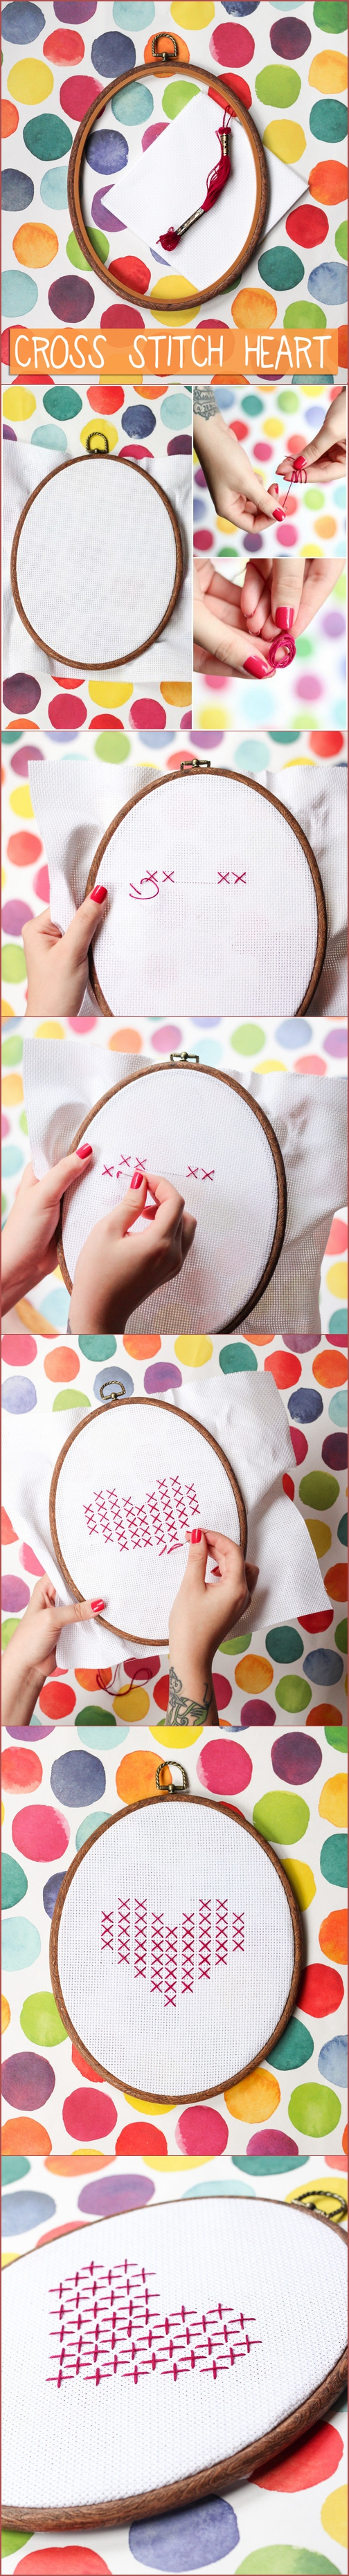 Cross Stitch Heart-We Like Craft